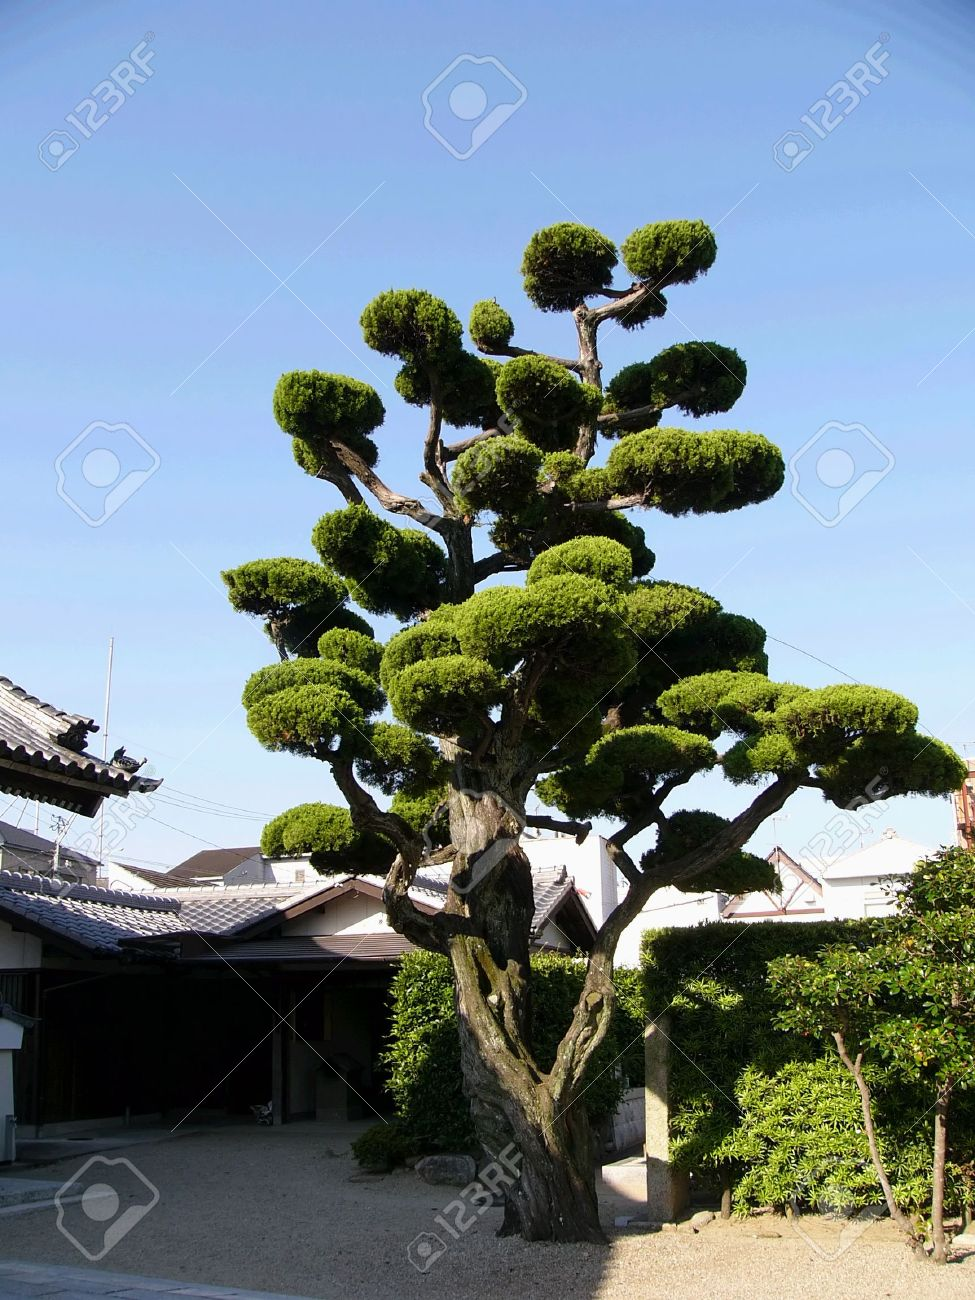 Japanese Tree In The Temple Backyard In Kyoto Japan Stock Photo